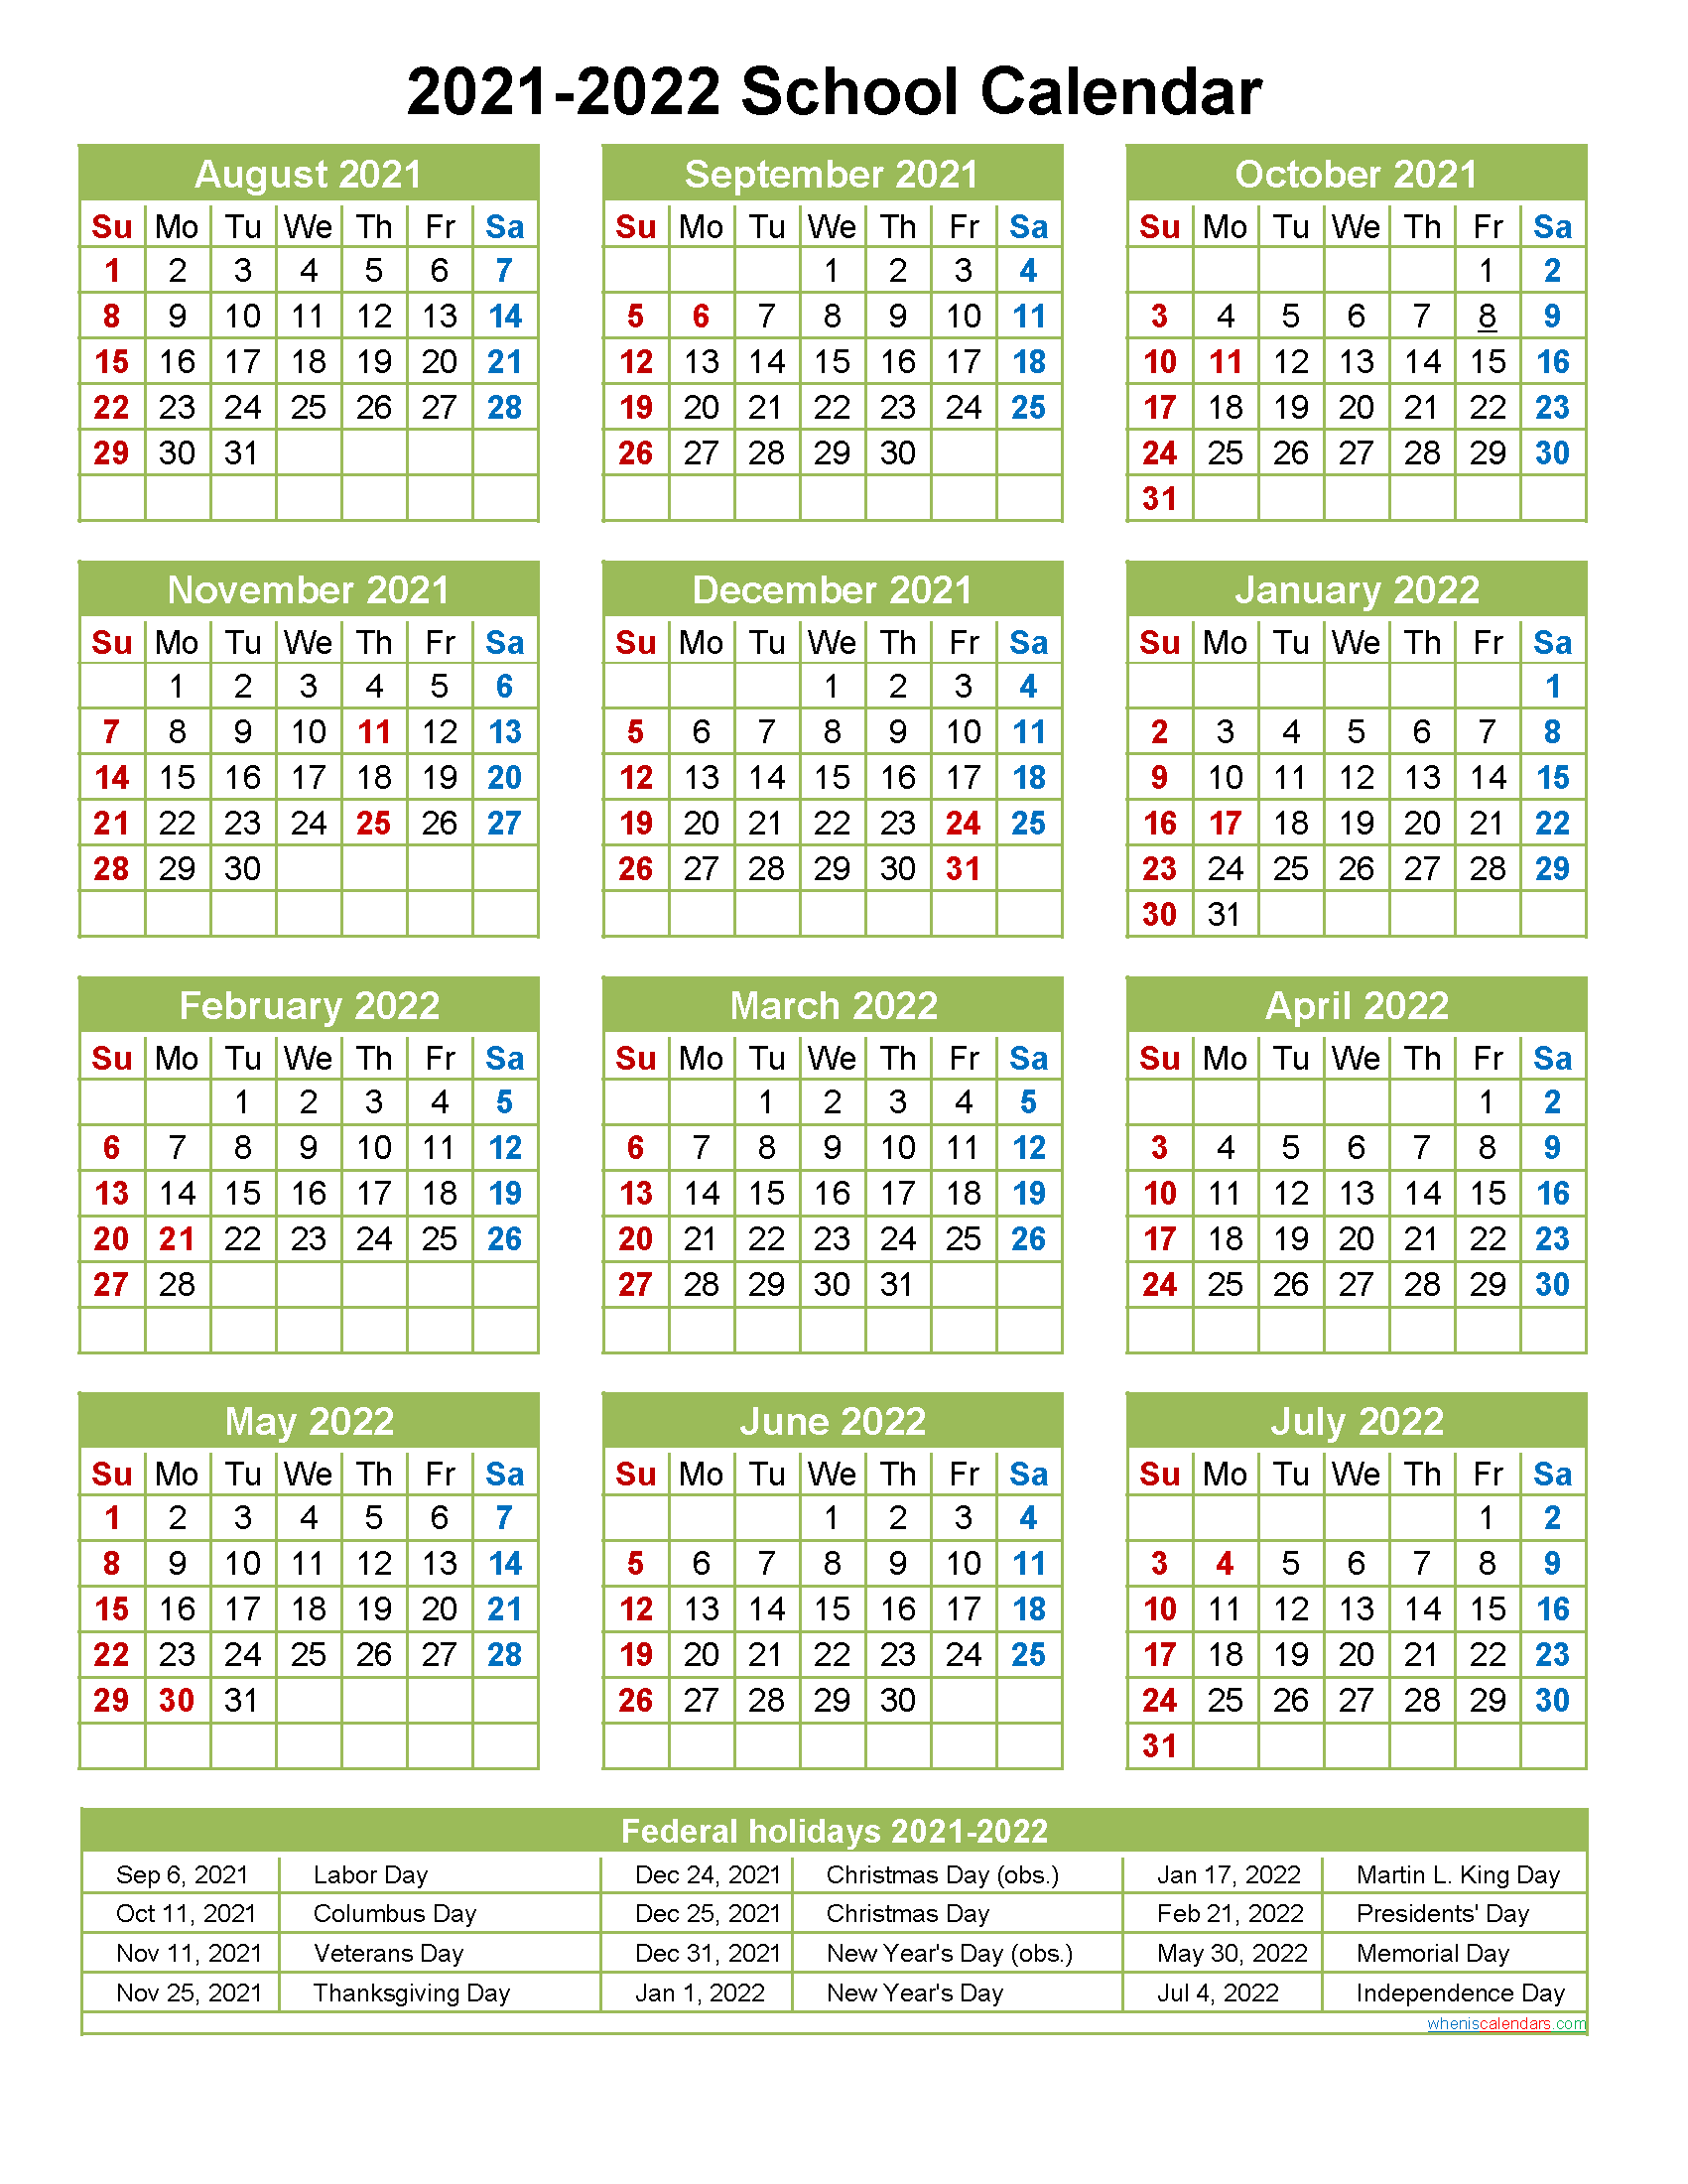 2021 and 2022 School Calendar Printable